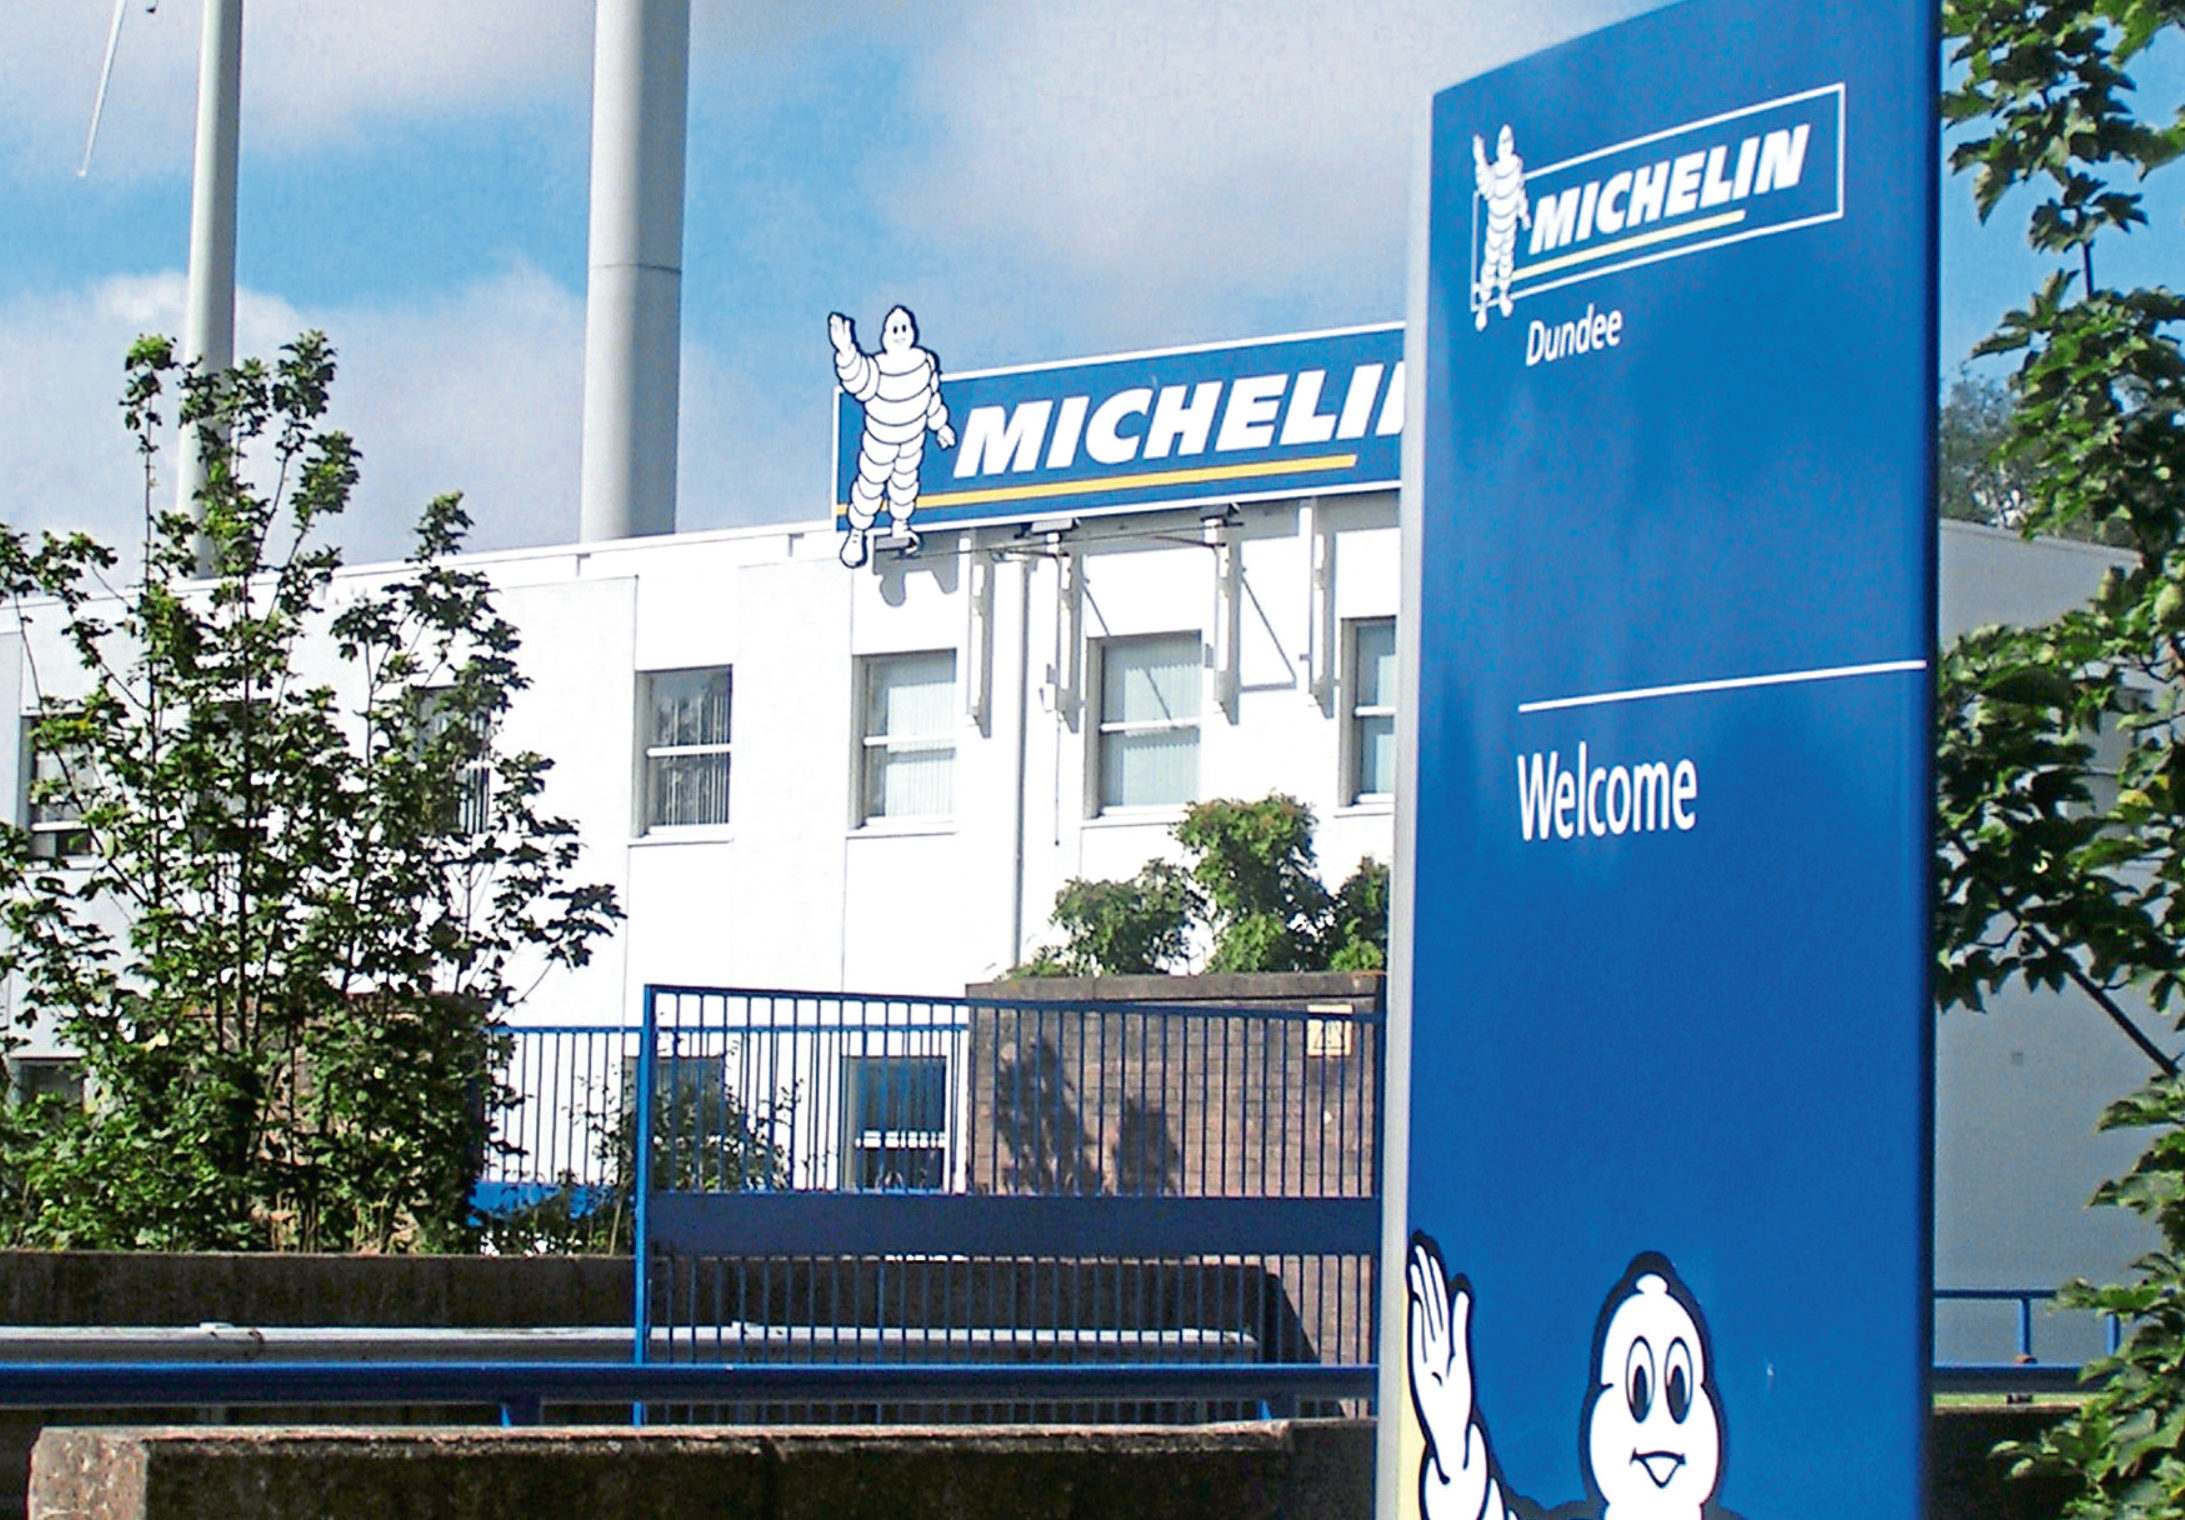 Michelin in Dundee